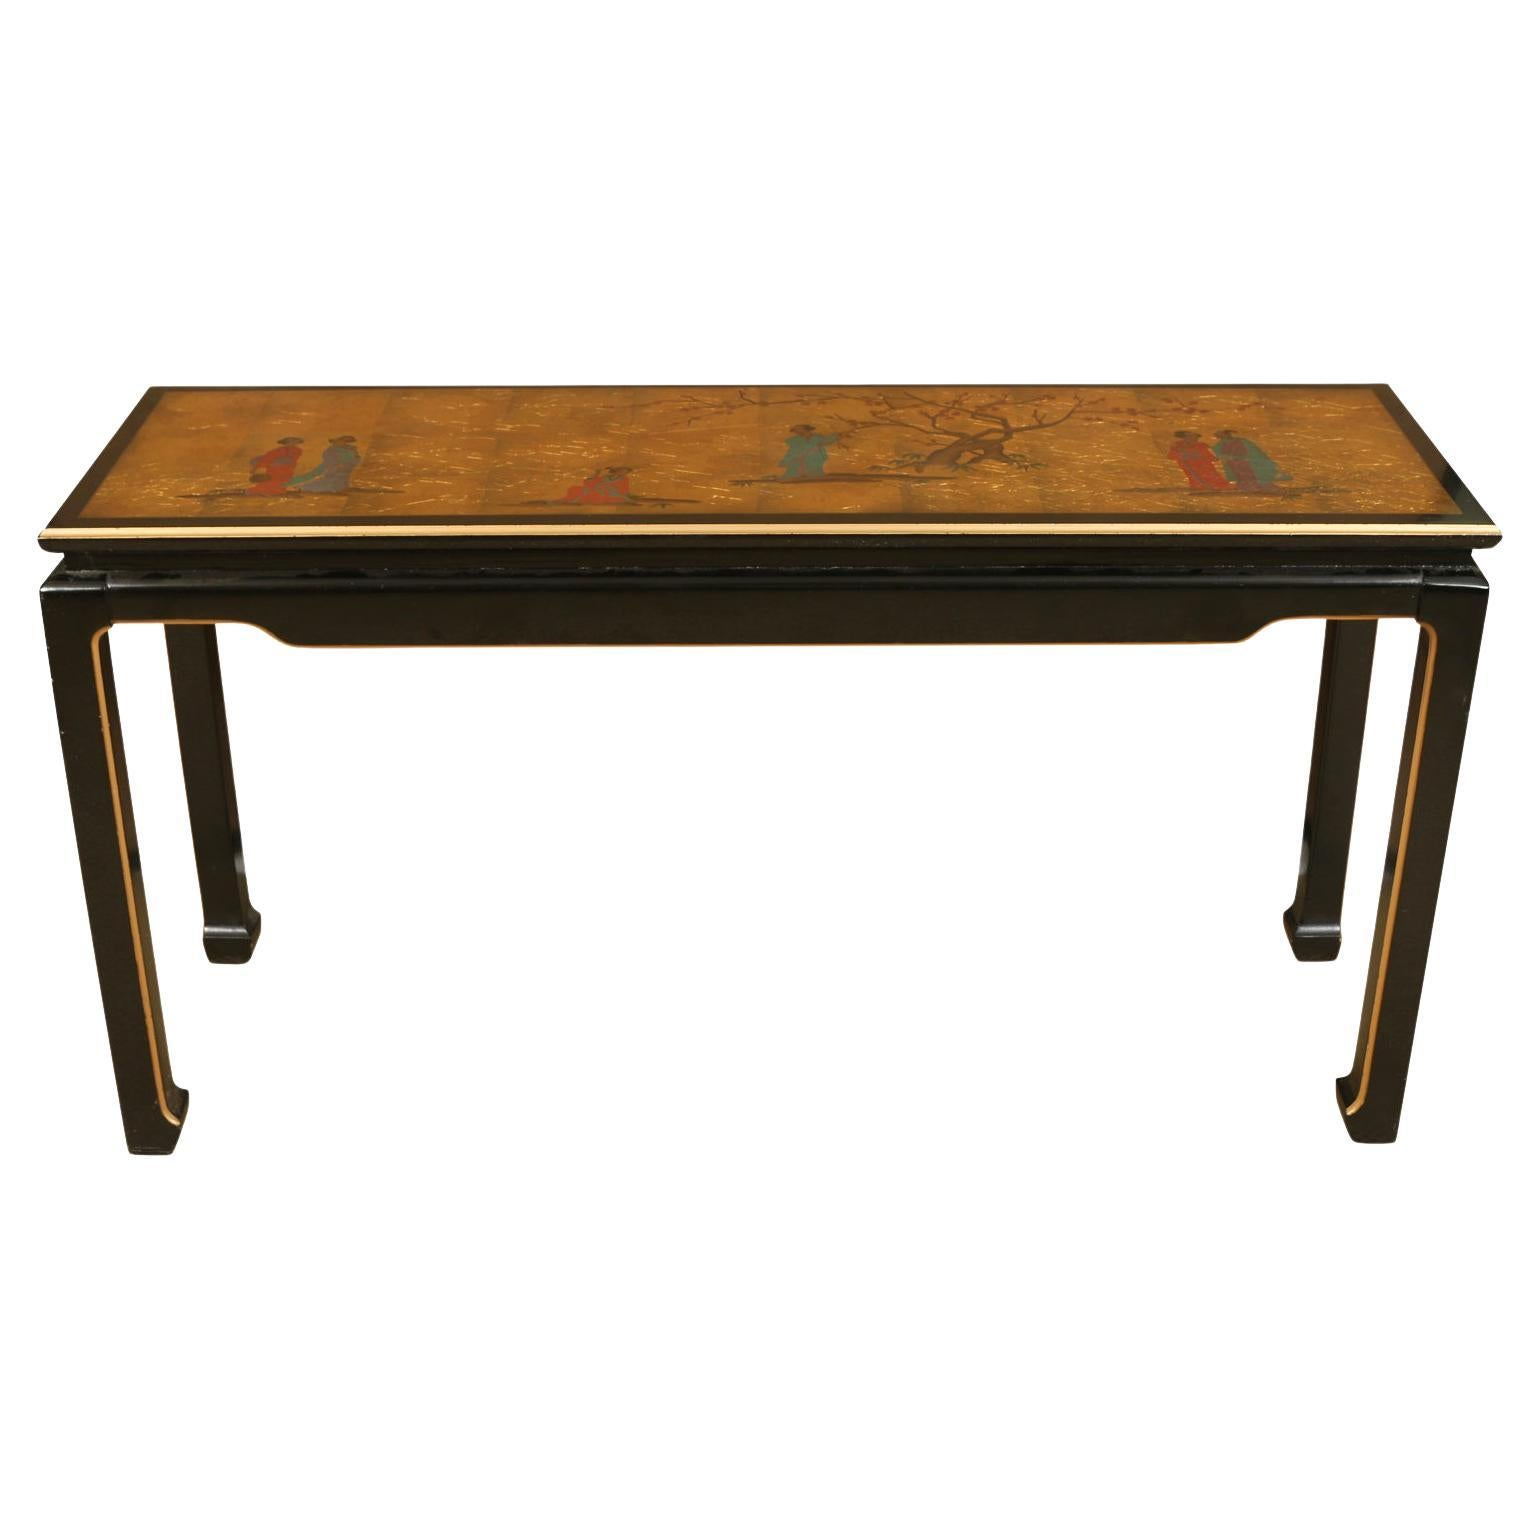 1960's Gold Leaf Asian Console